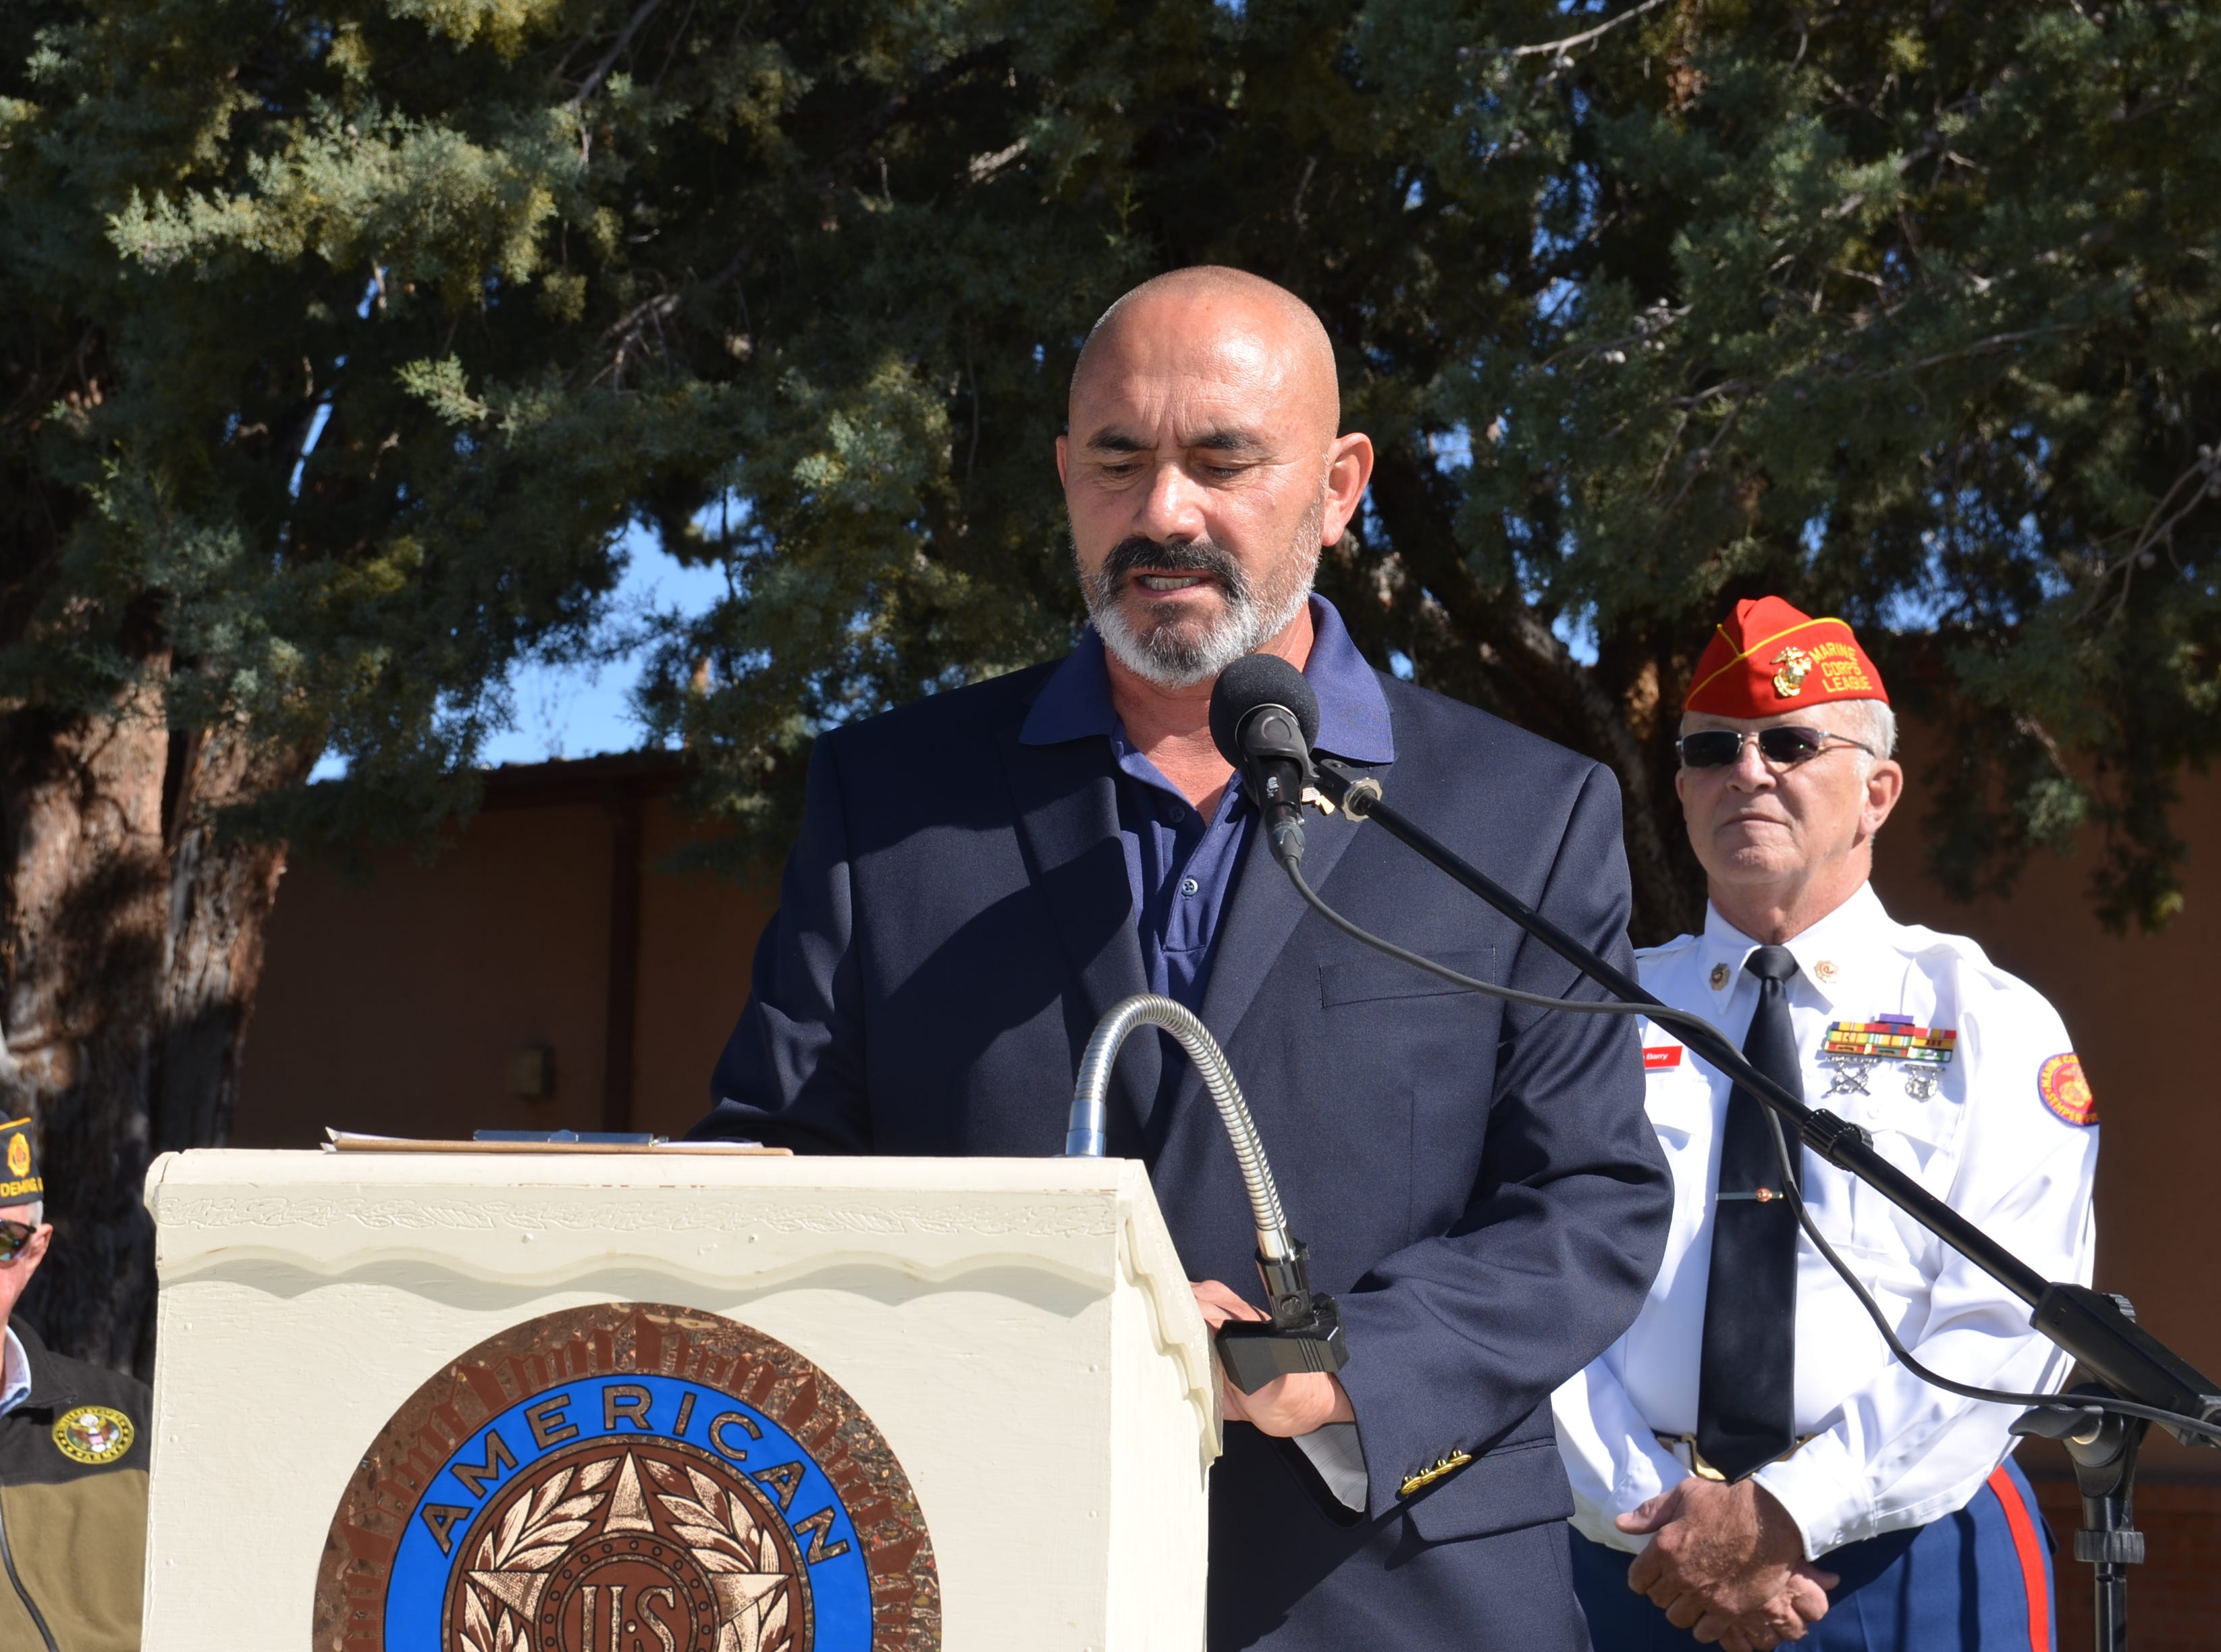 Deming Mayor Benny Jasso speaks in front of Veterans Day ceremony attendees and announces that a proclamation has been made in honor of Veterans Day and to remember those who have sacrificed their lives by serving their country.